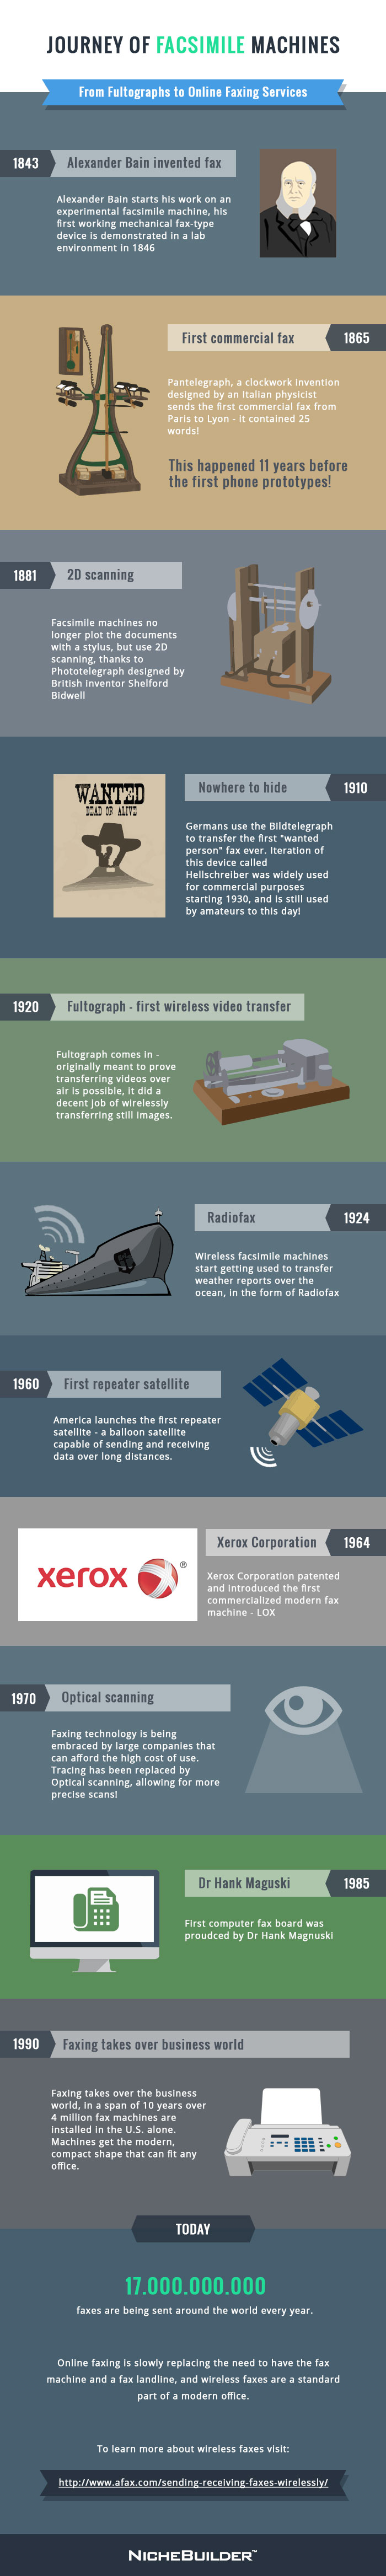 History of Fax Infographic